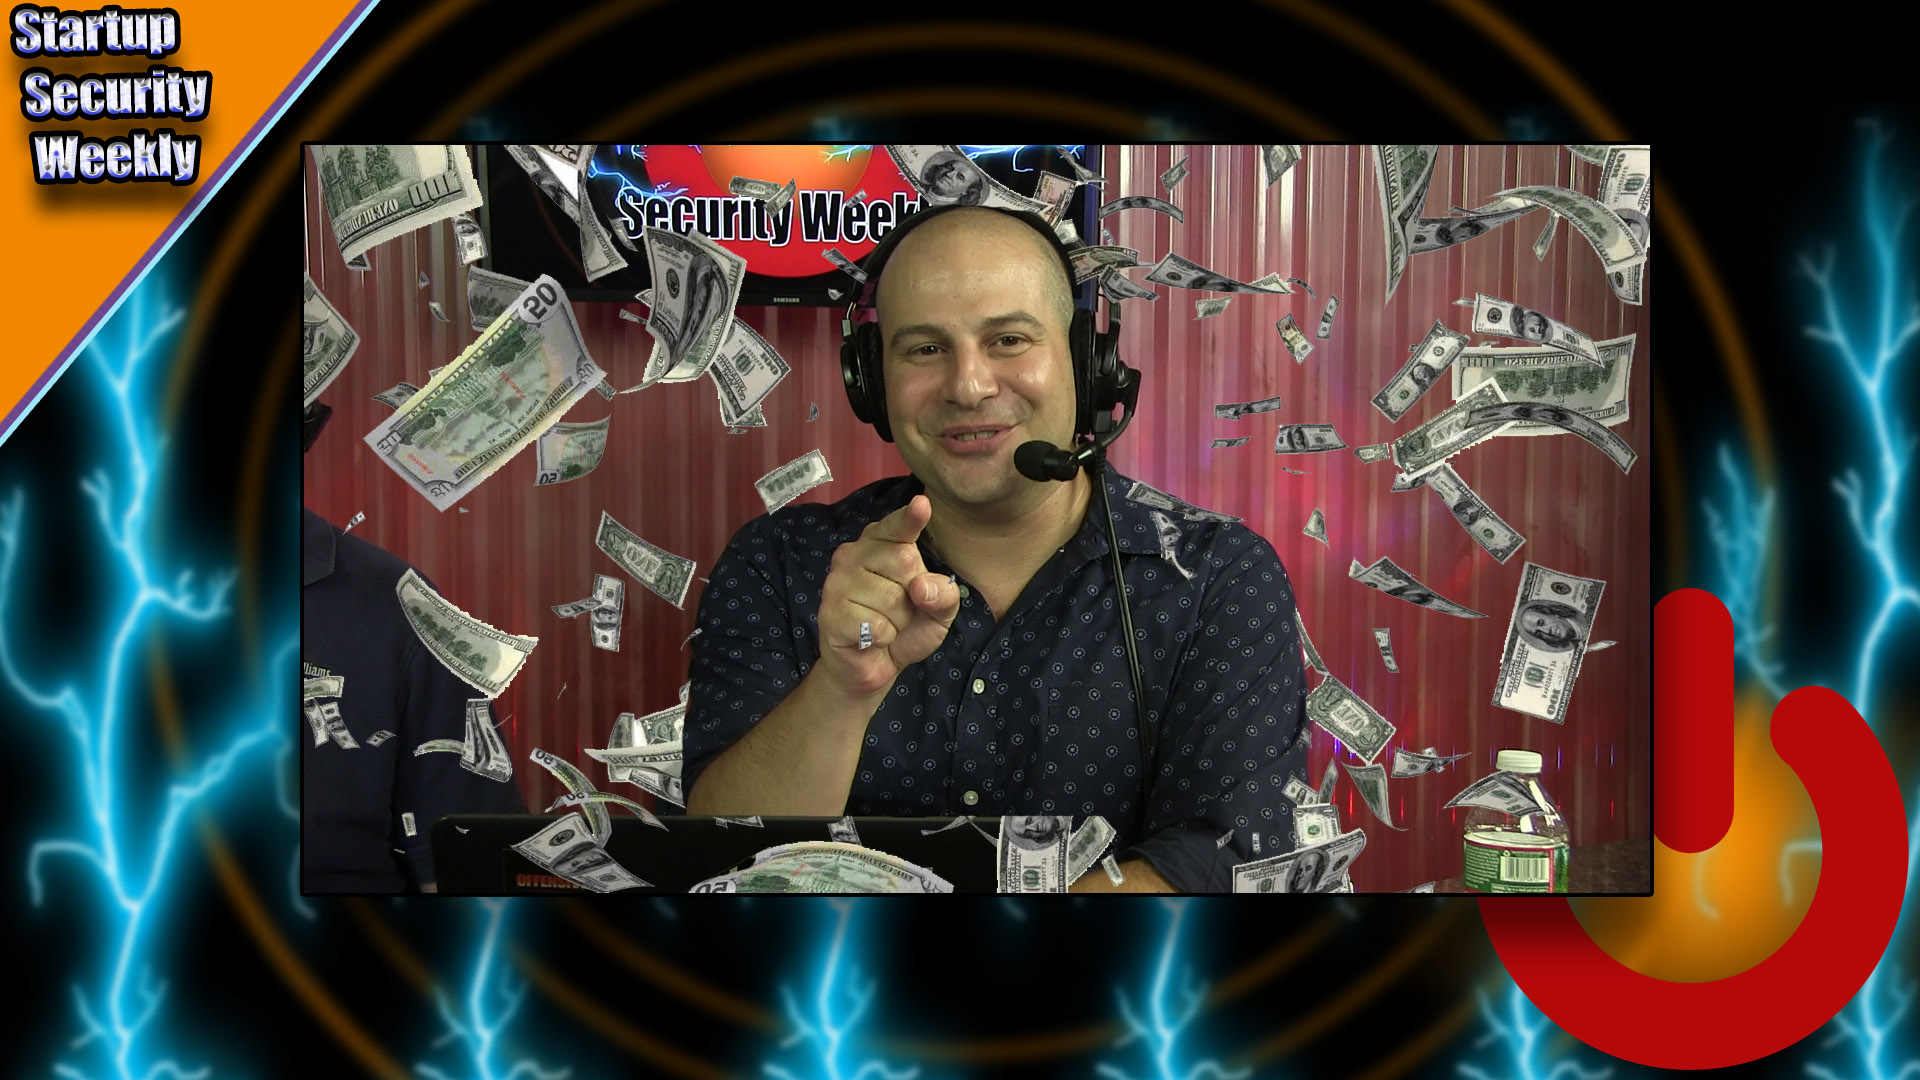 Artwork for Startup Security Weekly #9 - Funding Your Startup